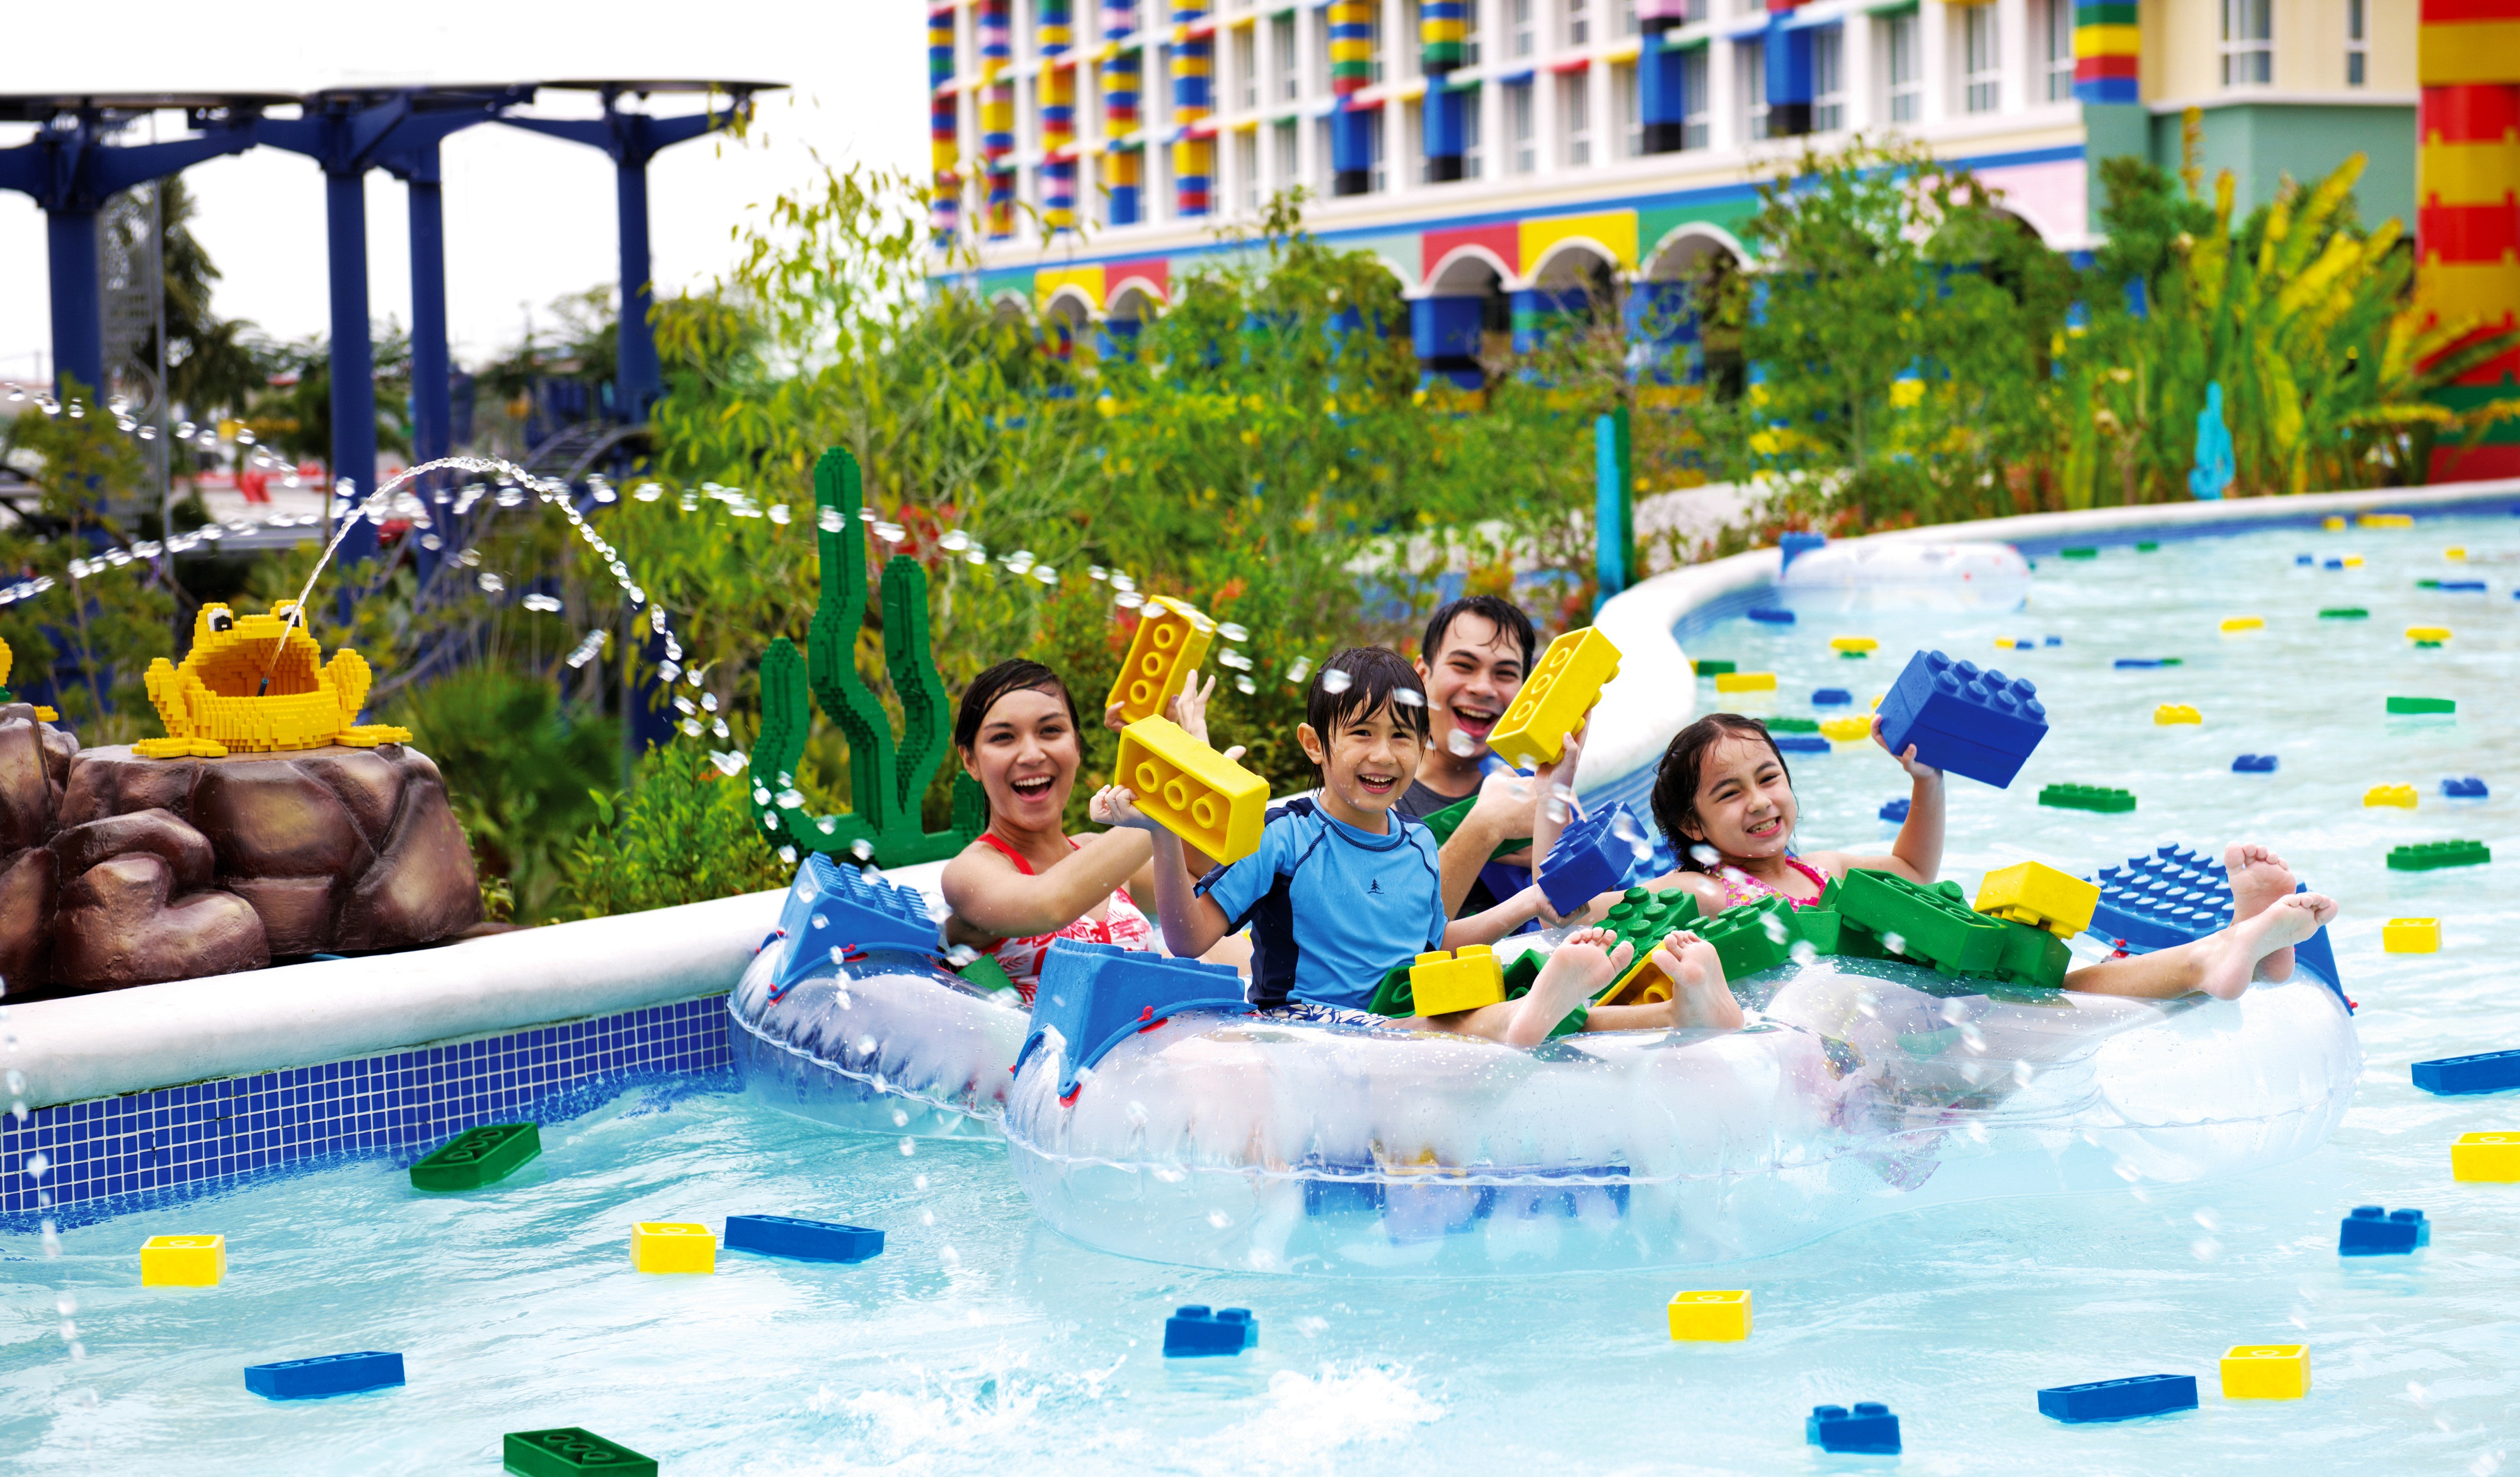 Take A Look At The World's Largest Legoland Water Park ...